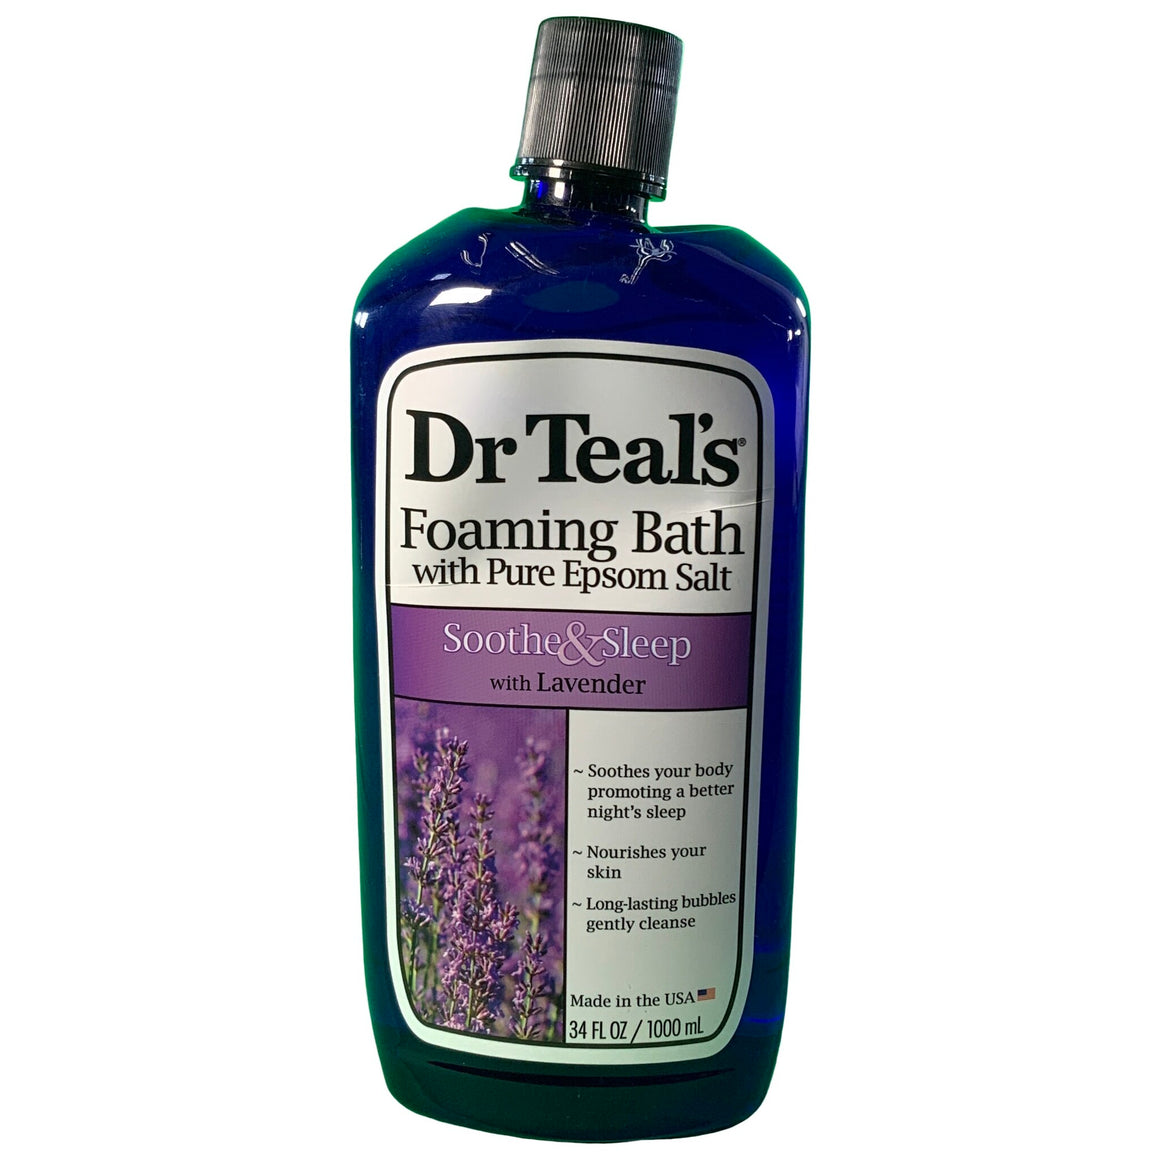 Foaming Bath, Soothe & Sleep With Lavender 34 Fl Oz - Dr. Teal'S